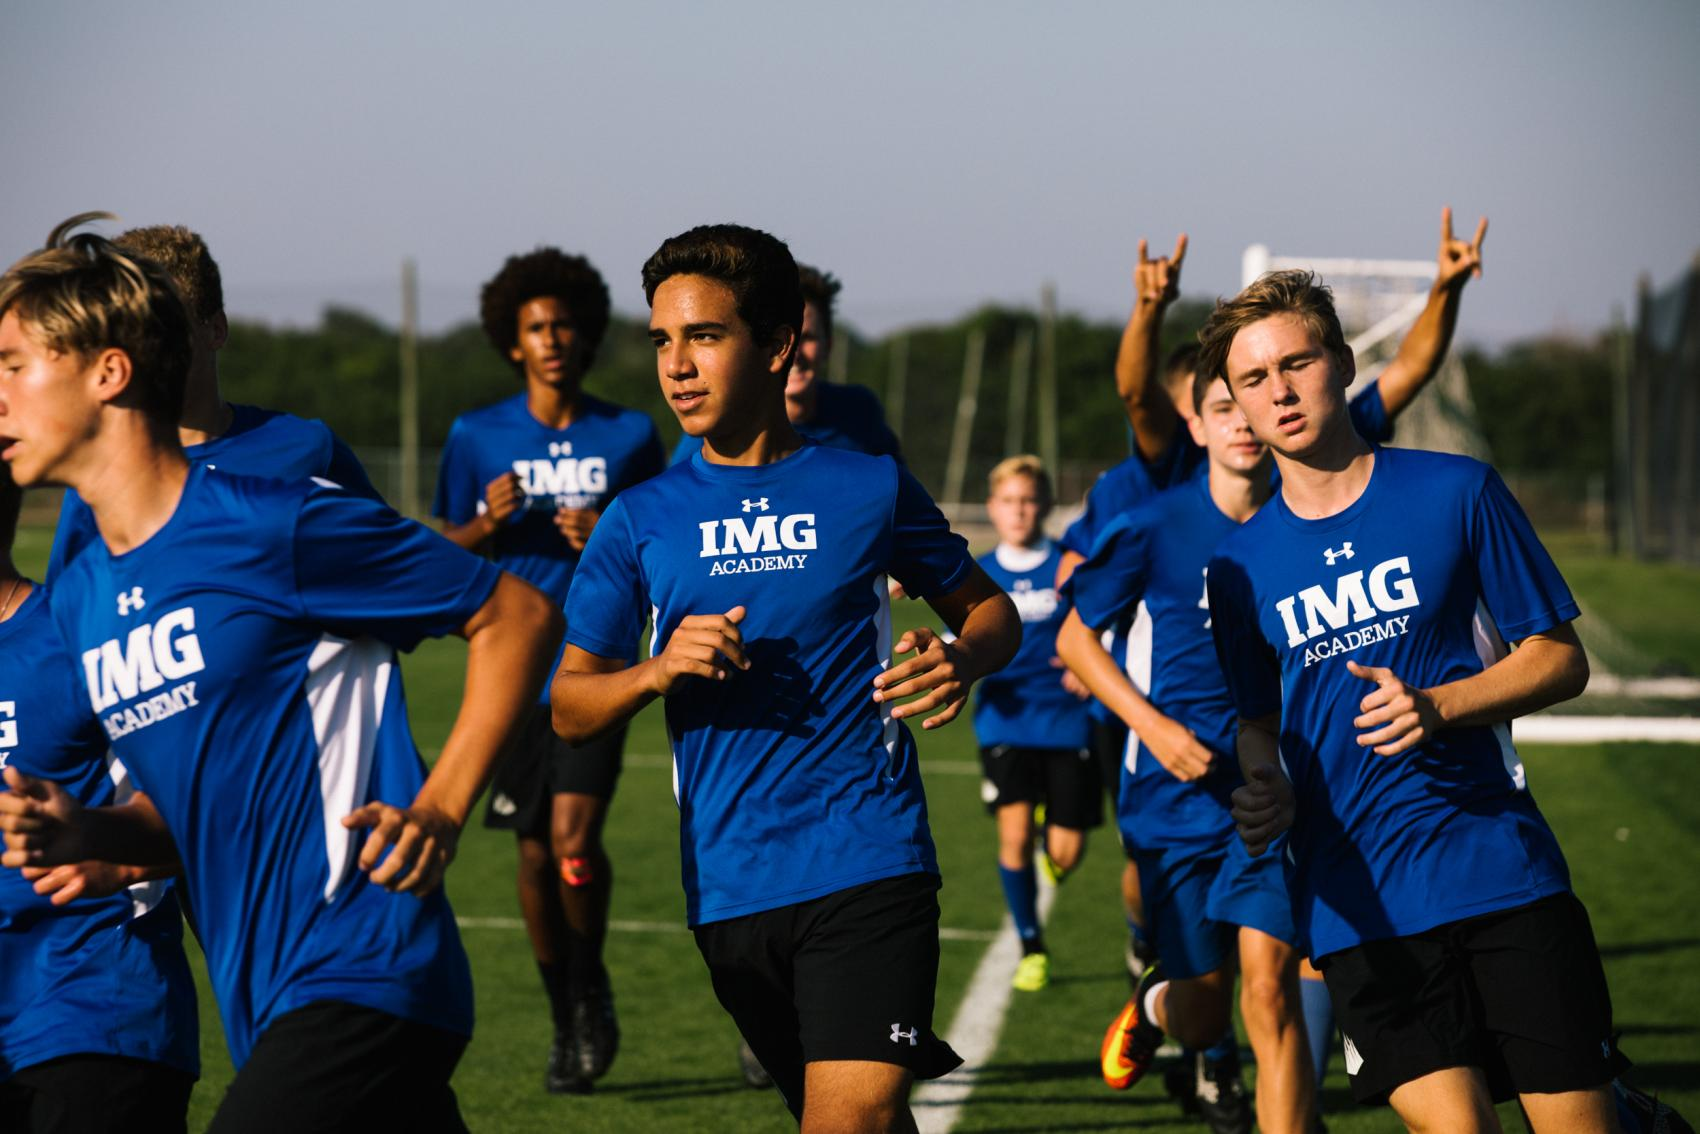 Img: Athletic Programs